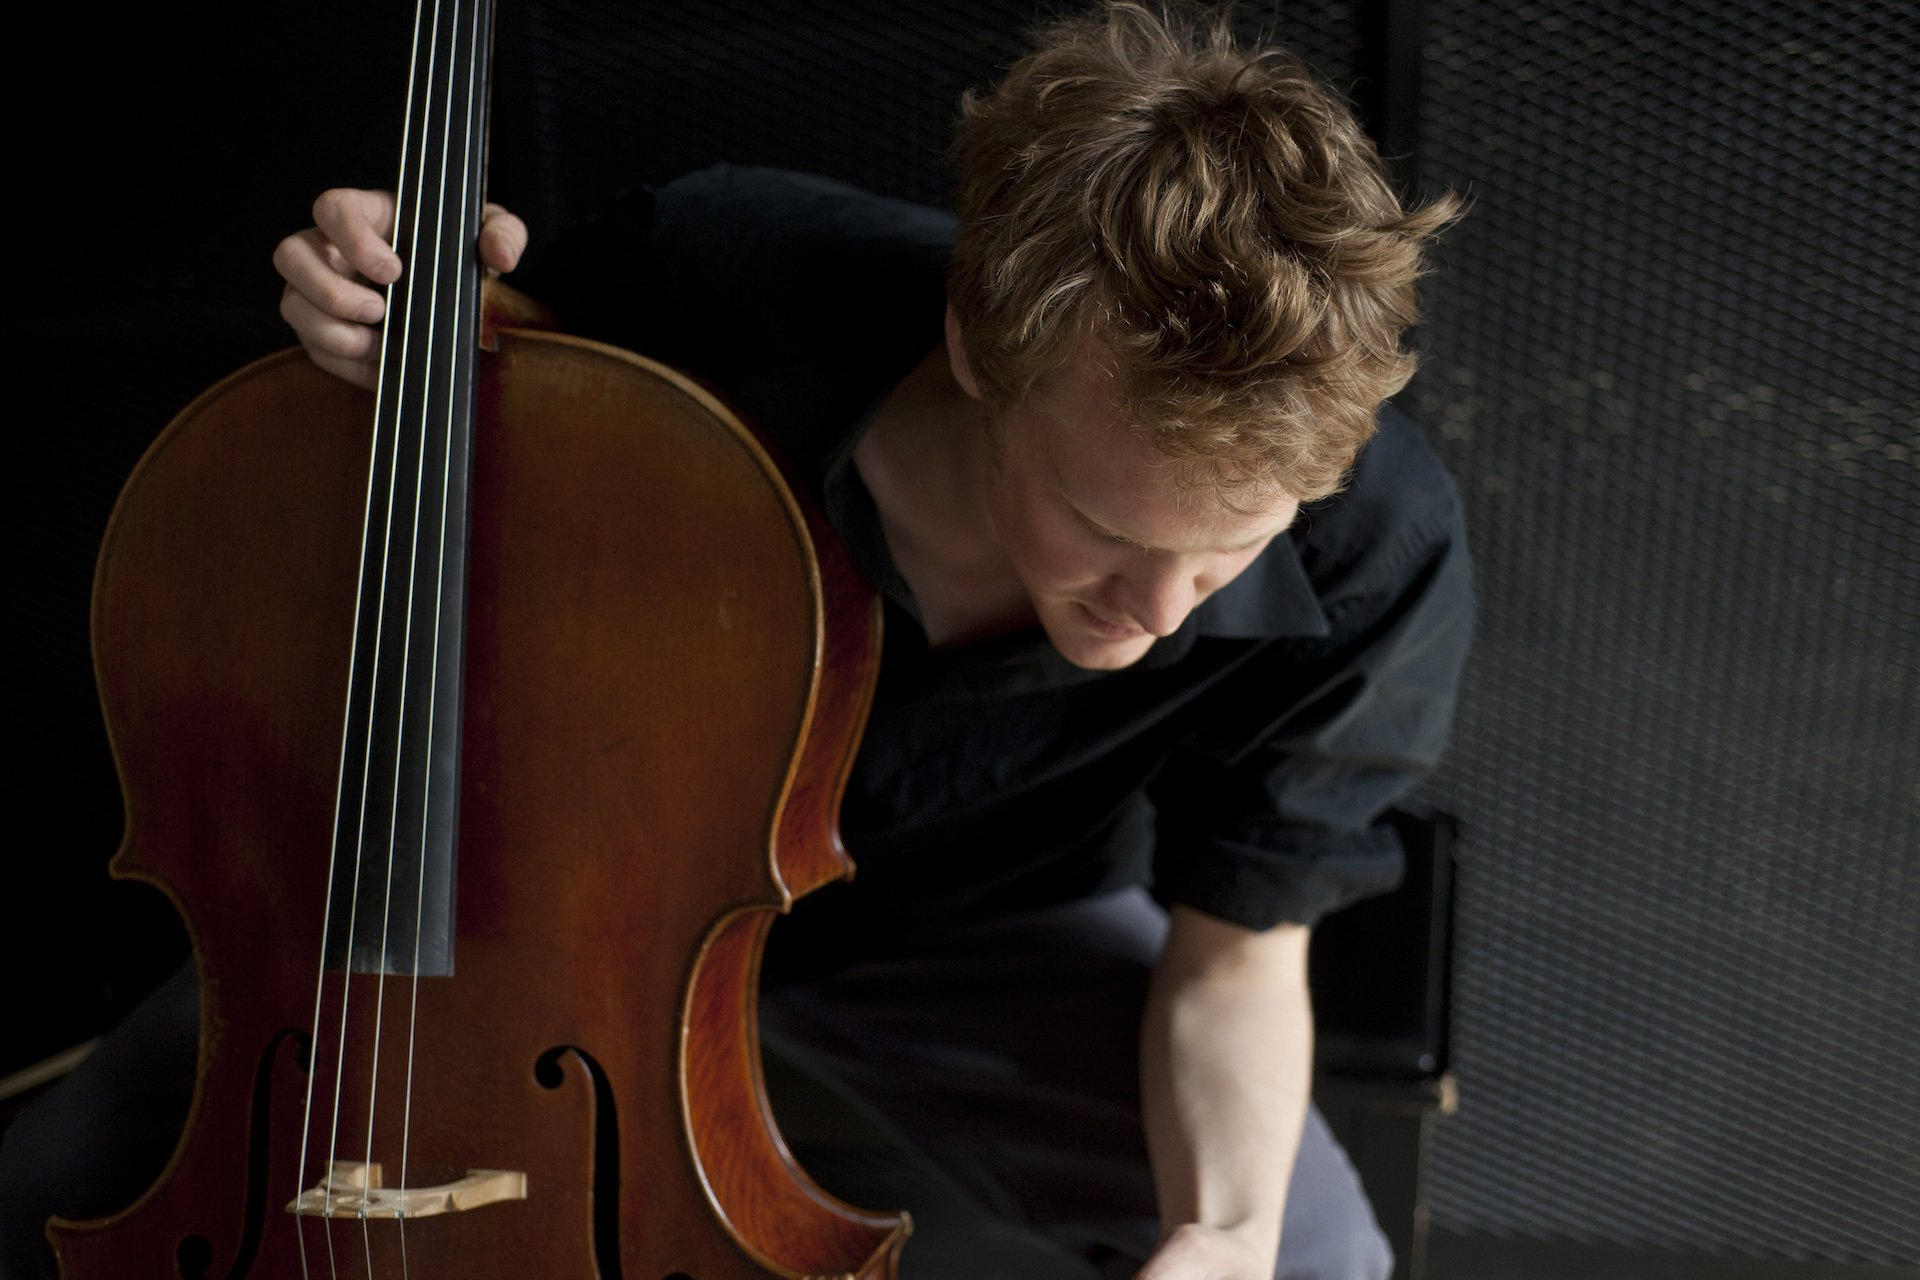 Jari Piper, Cellist, Concert July 10th, 2pm